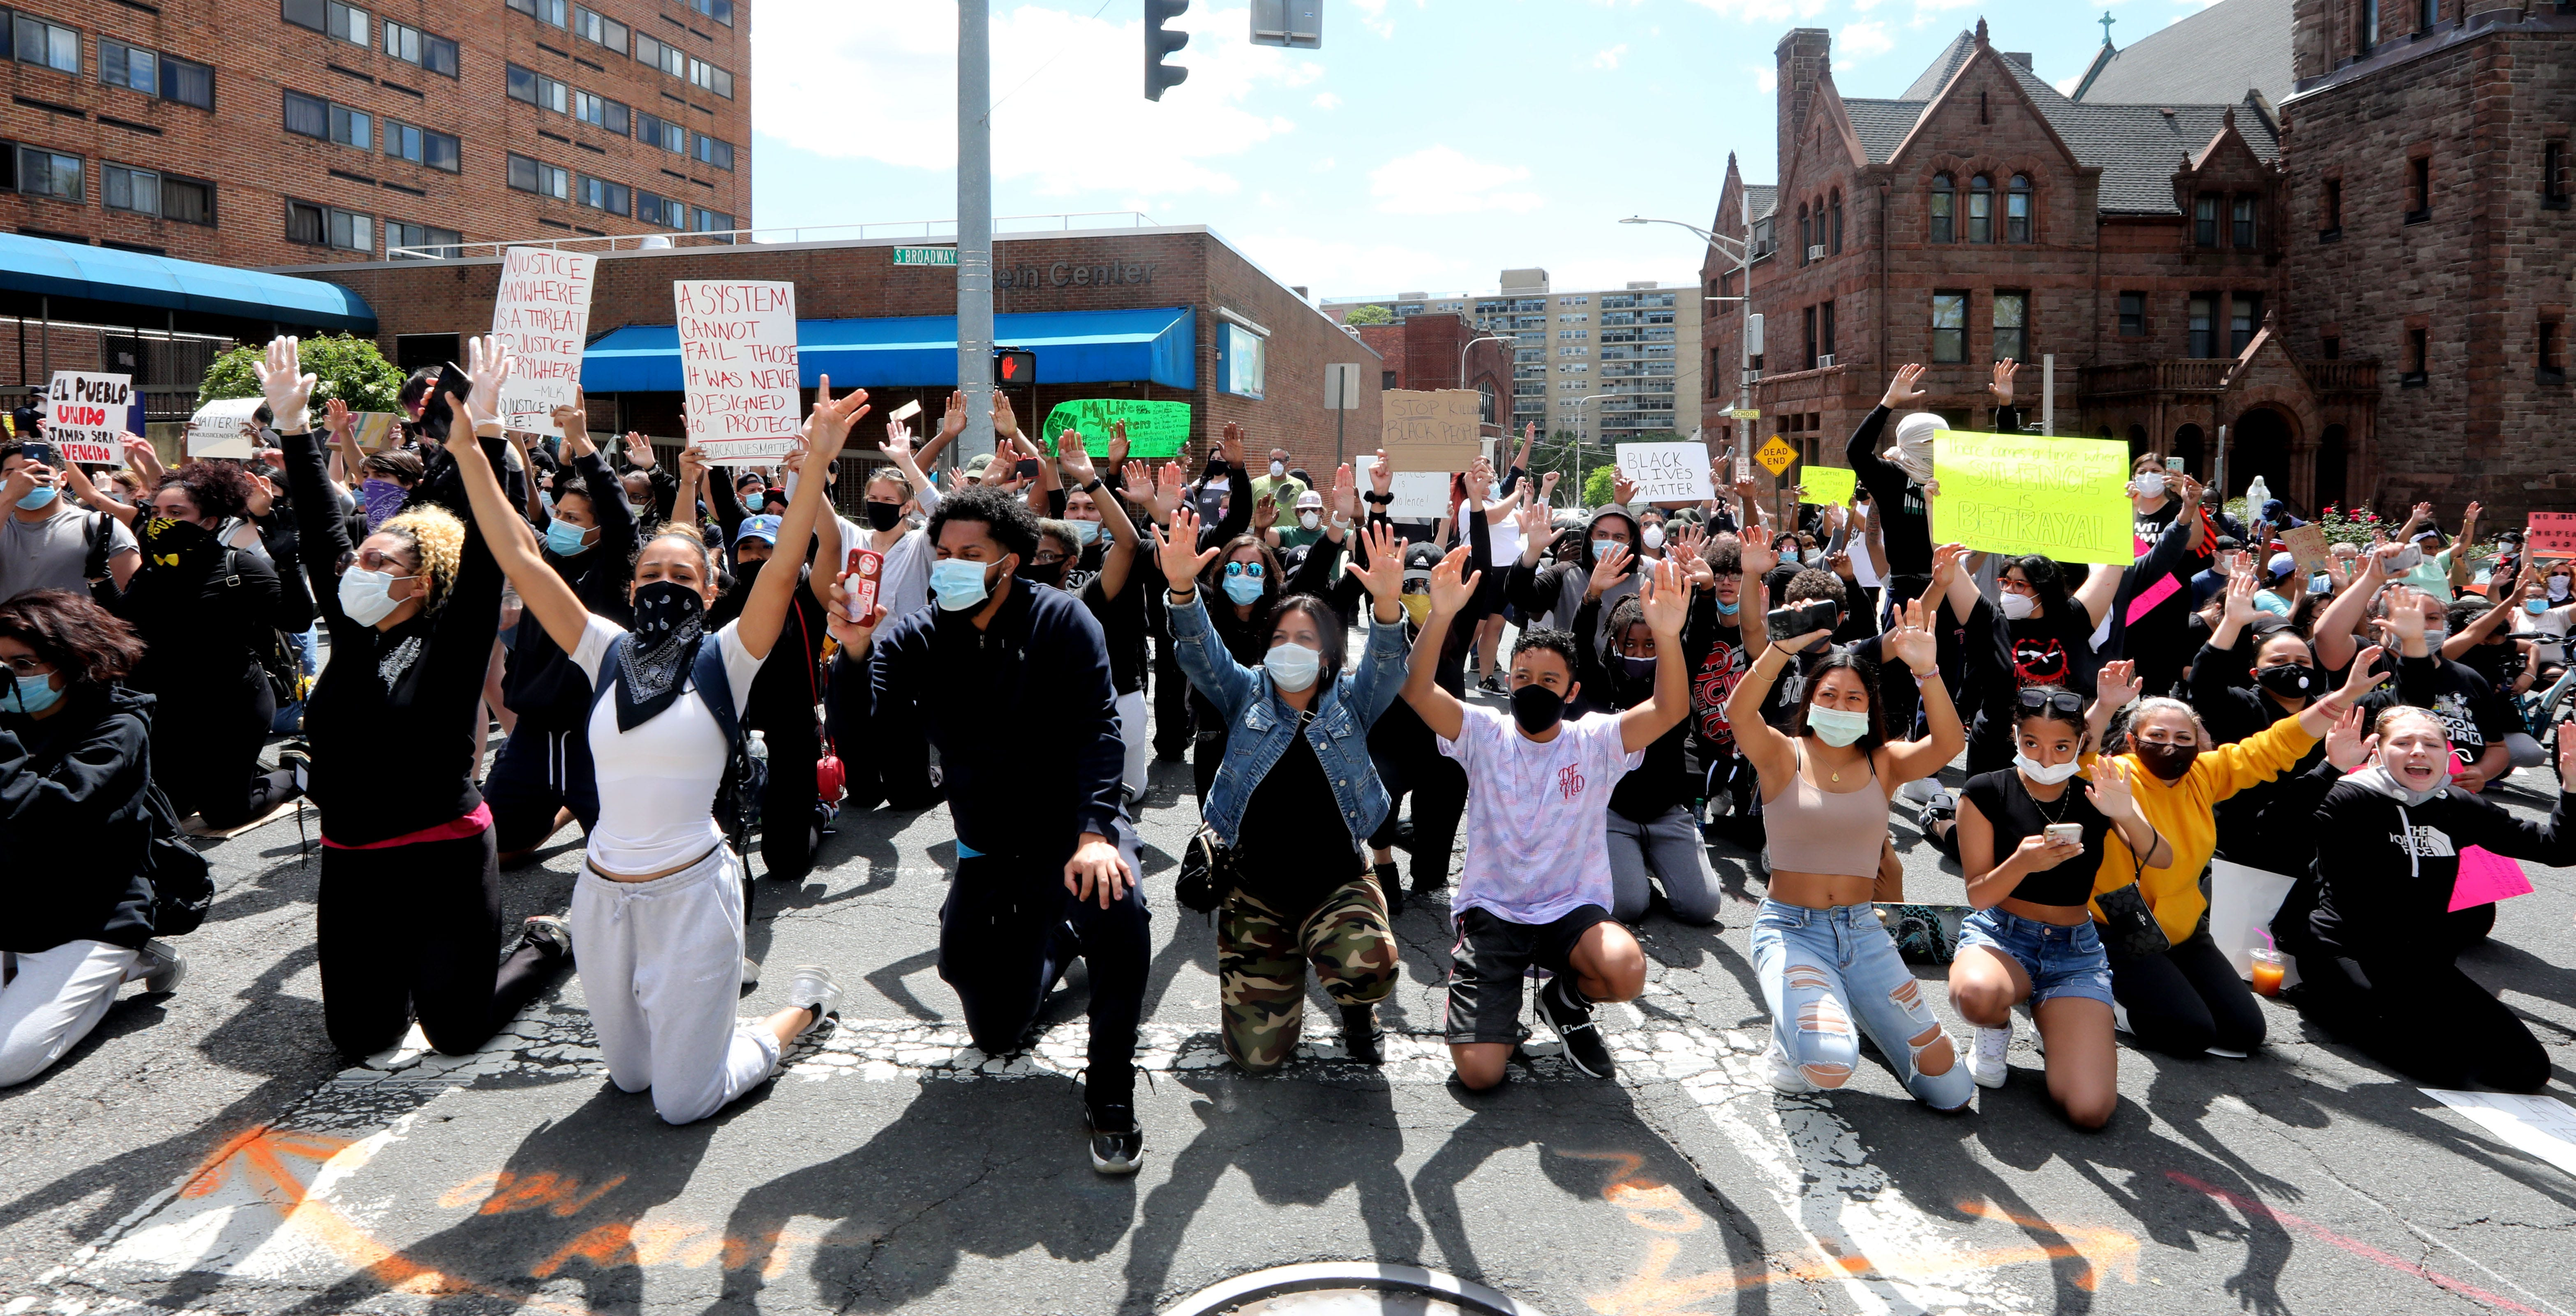 Protesters raise their hands as they kneel in front of the Yonkers police headquarters during a march and rally in Yonkers, N.Y. May 31, 2020 to protest the death of George Floyd in Minneapolis.